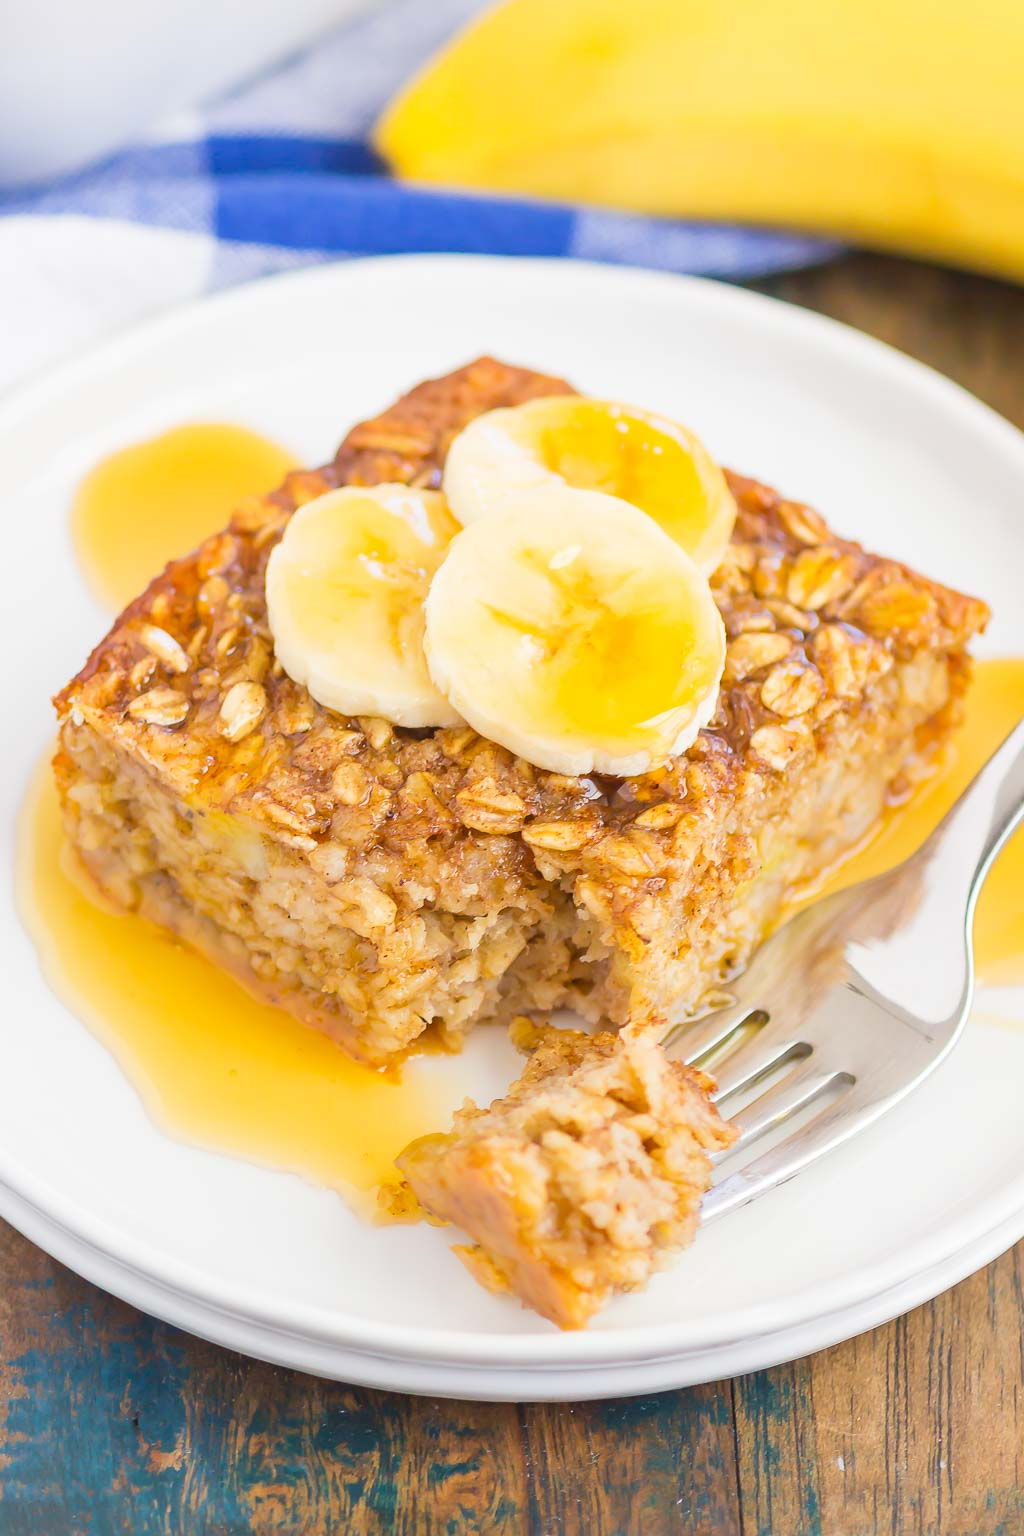 slice of banana baked oatmeal drizzled with honey on white plate with fork